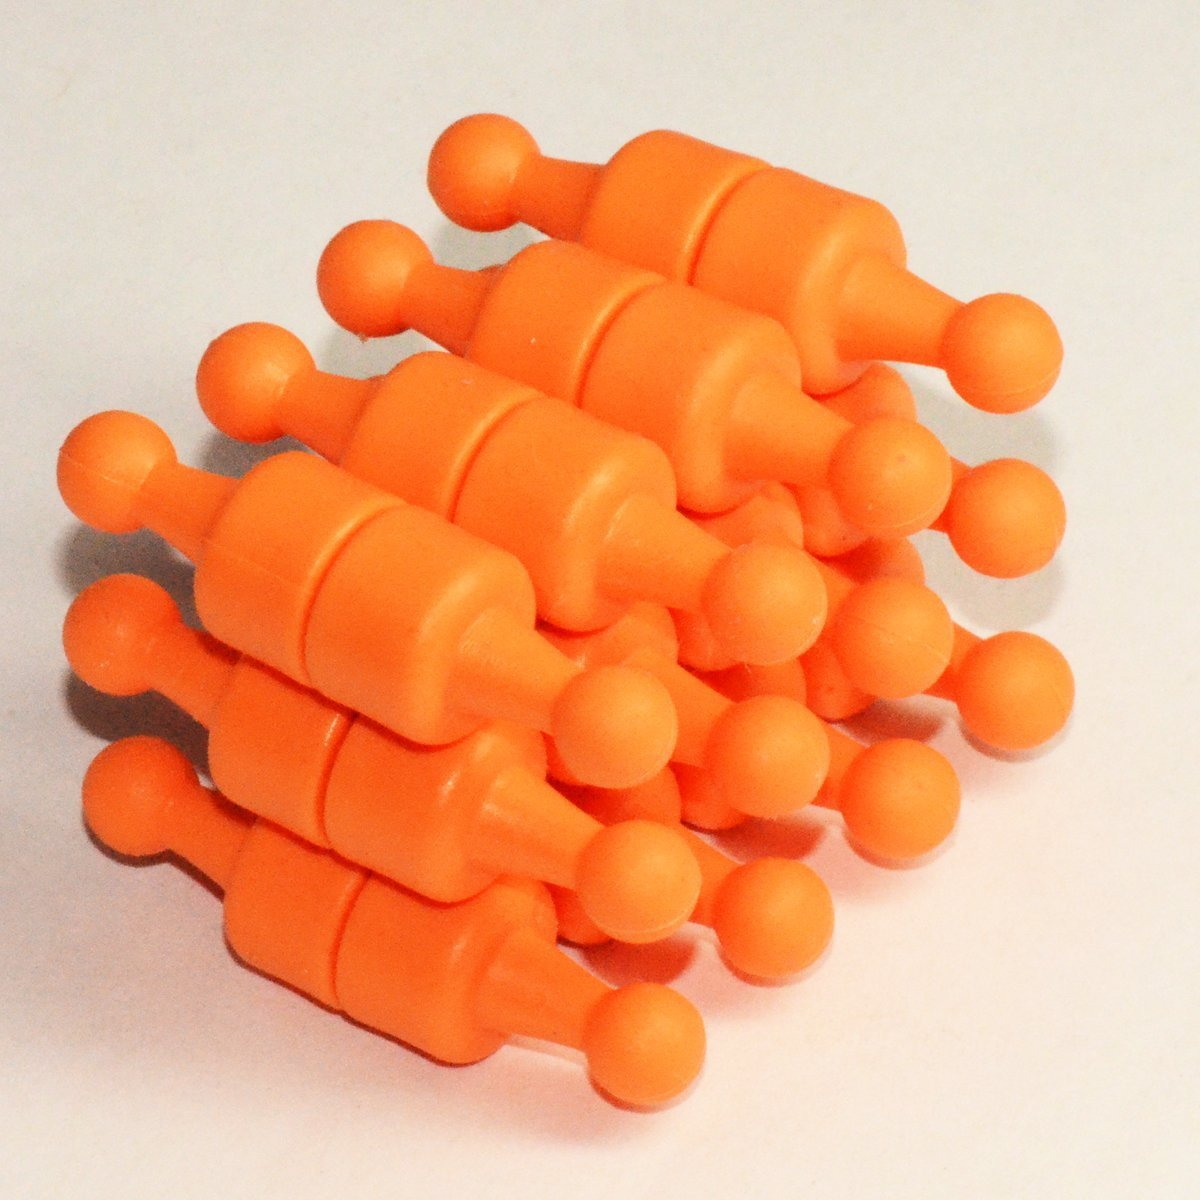 24 Ct. NeoPin® Orange Magnetic Push Pins - Super Strong Neodymium Magnets. Great for Magnetic Whiteboards, Refrigerators, other Applications